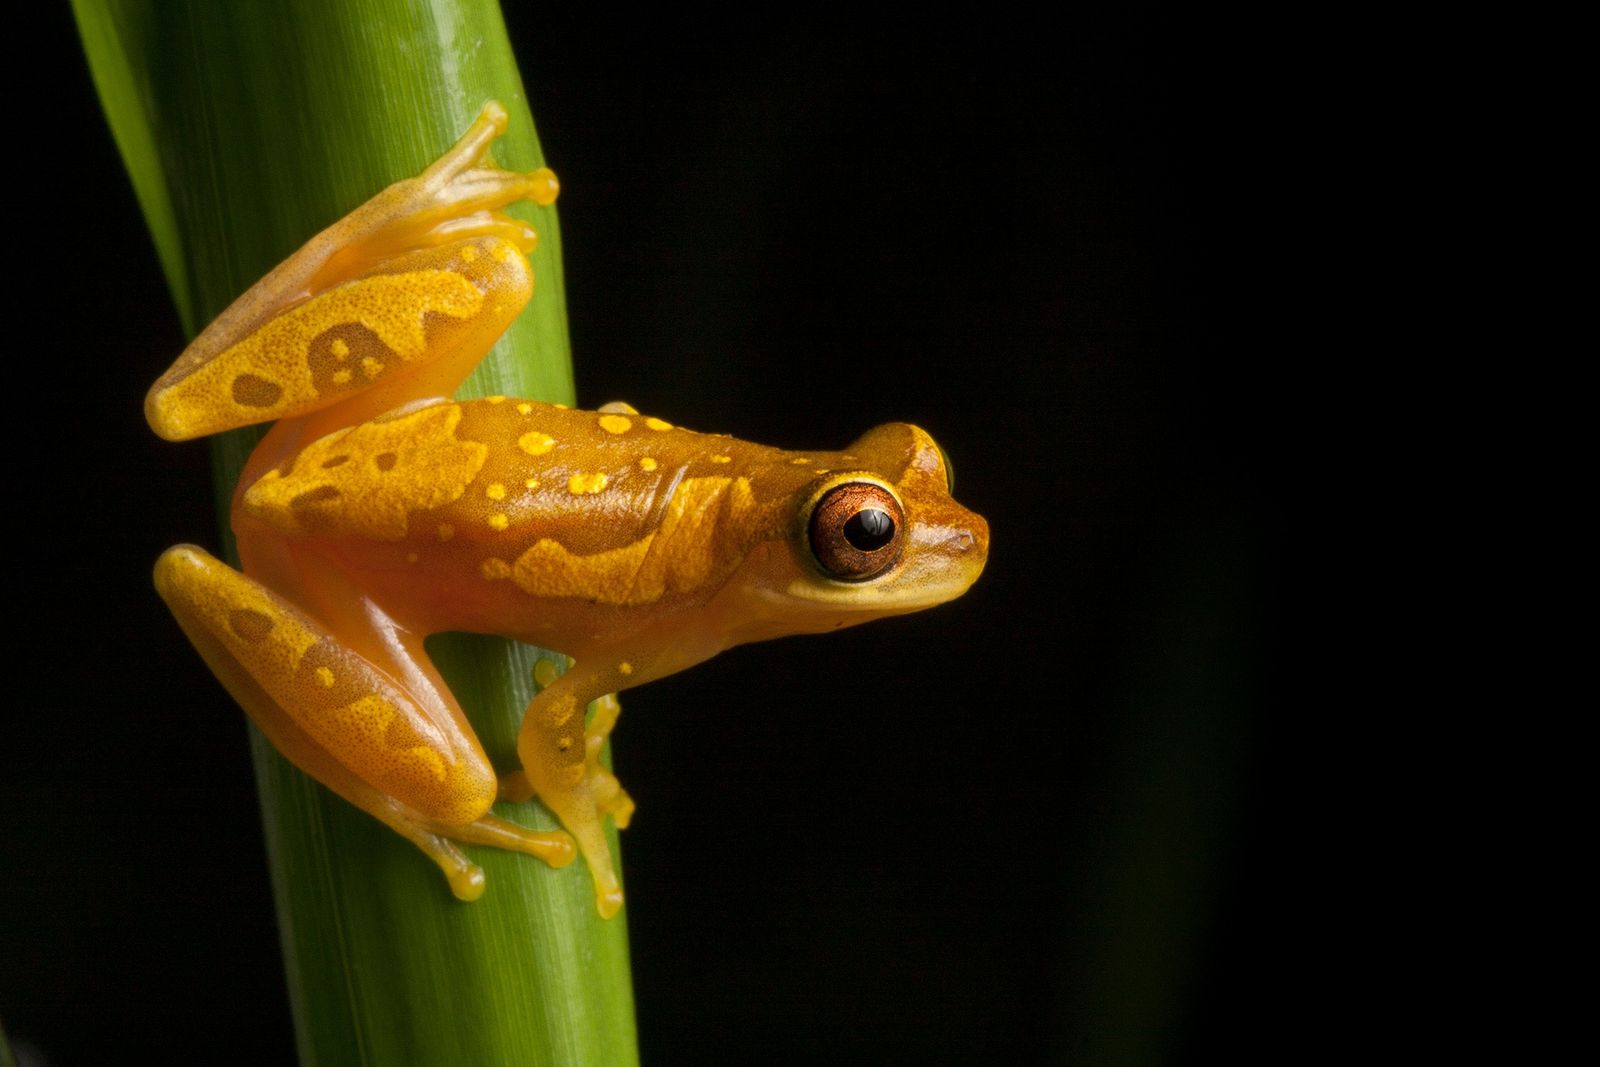 We may know less about the 'amphibian apocalypse' than we thought